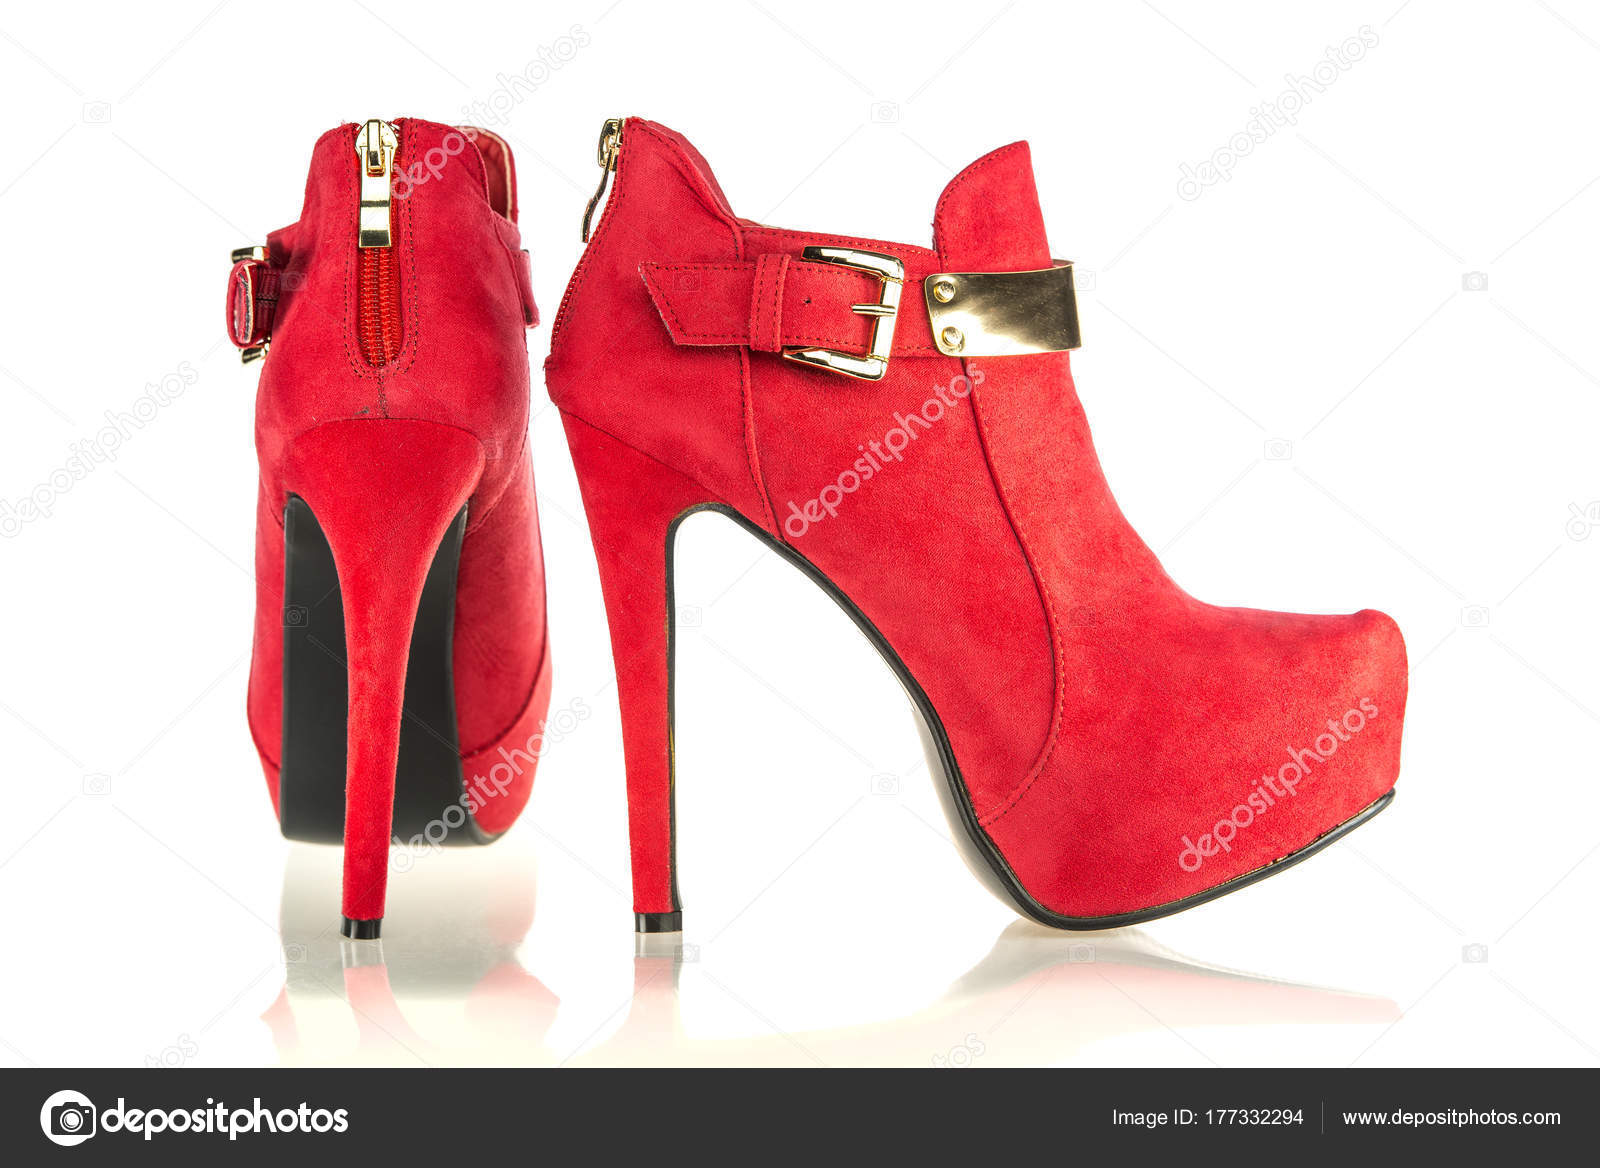 d391ae12ed4 fashionable stiletto high heels ankle boots in red — Stock Photo ...